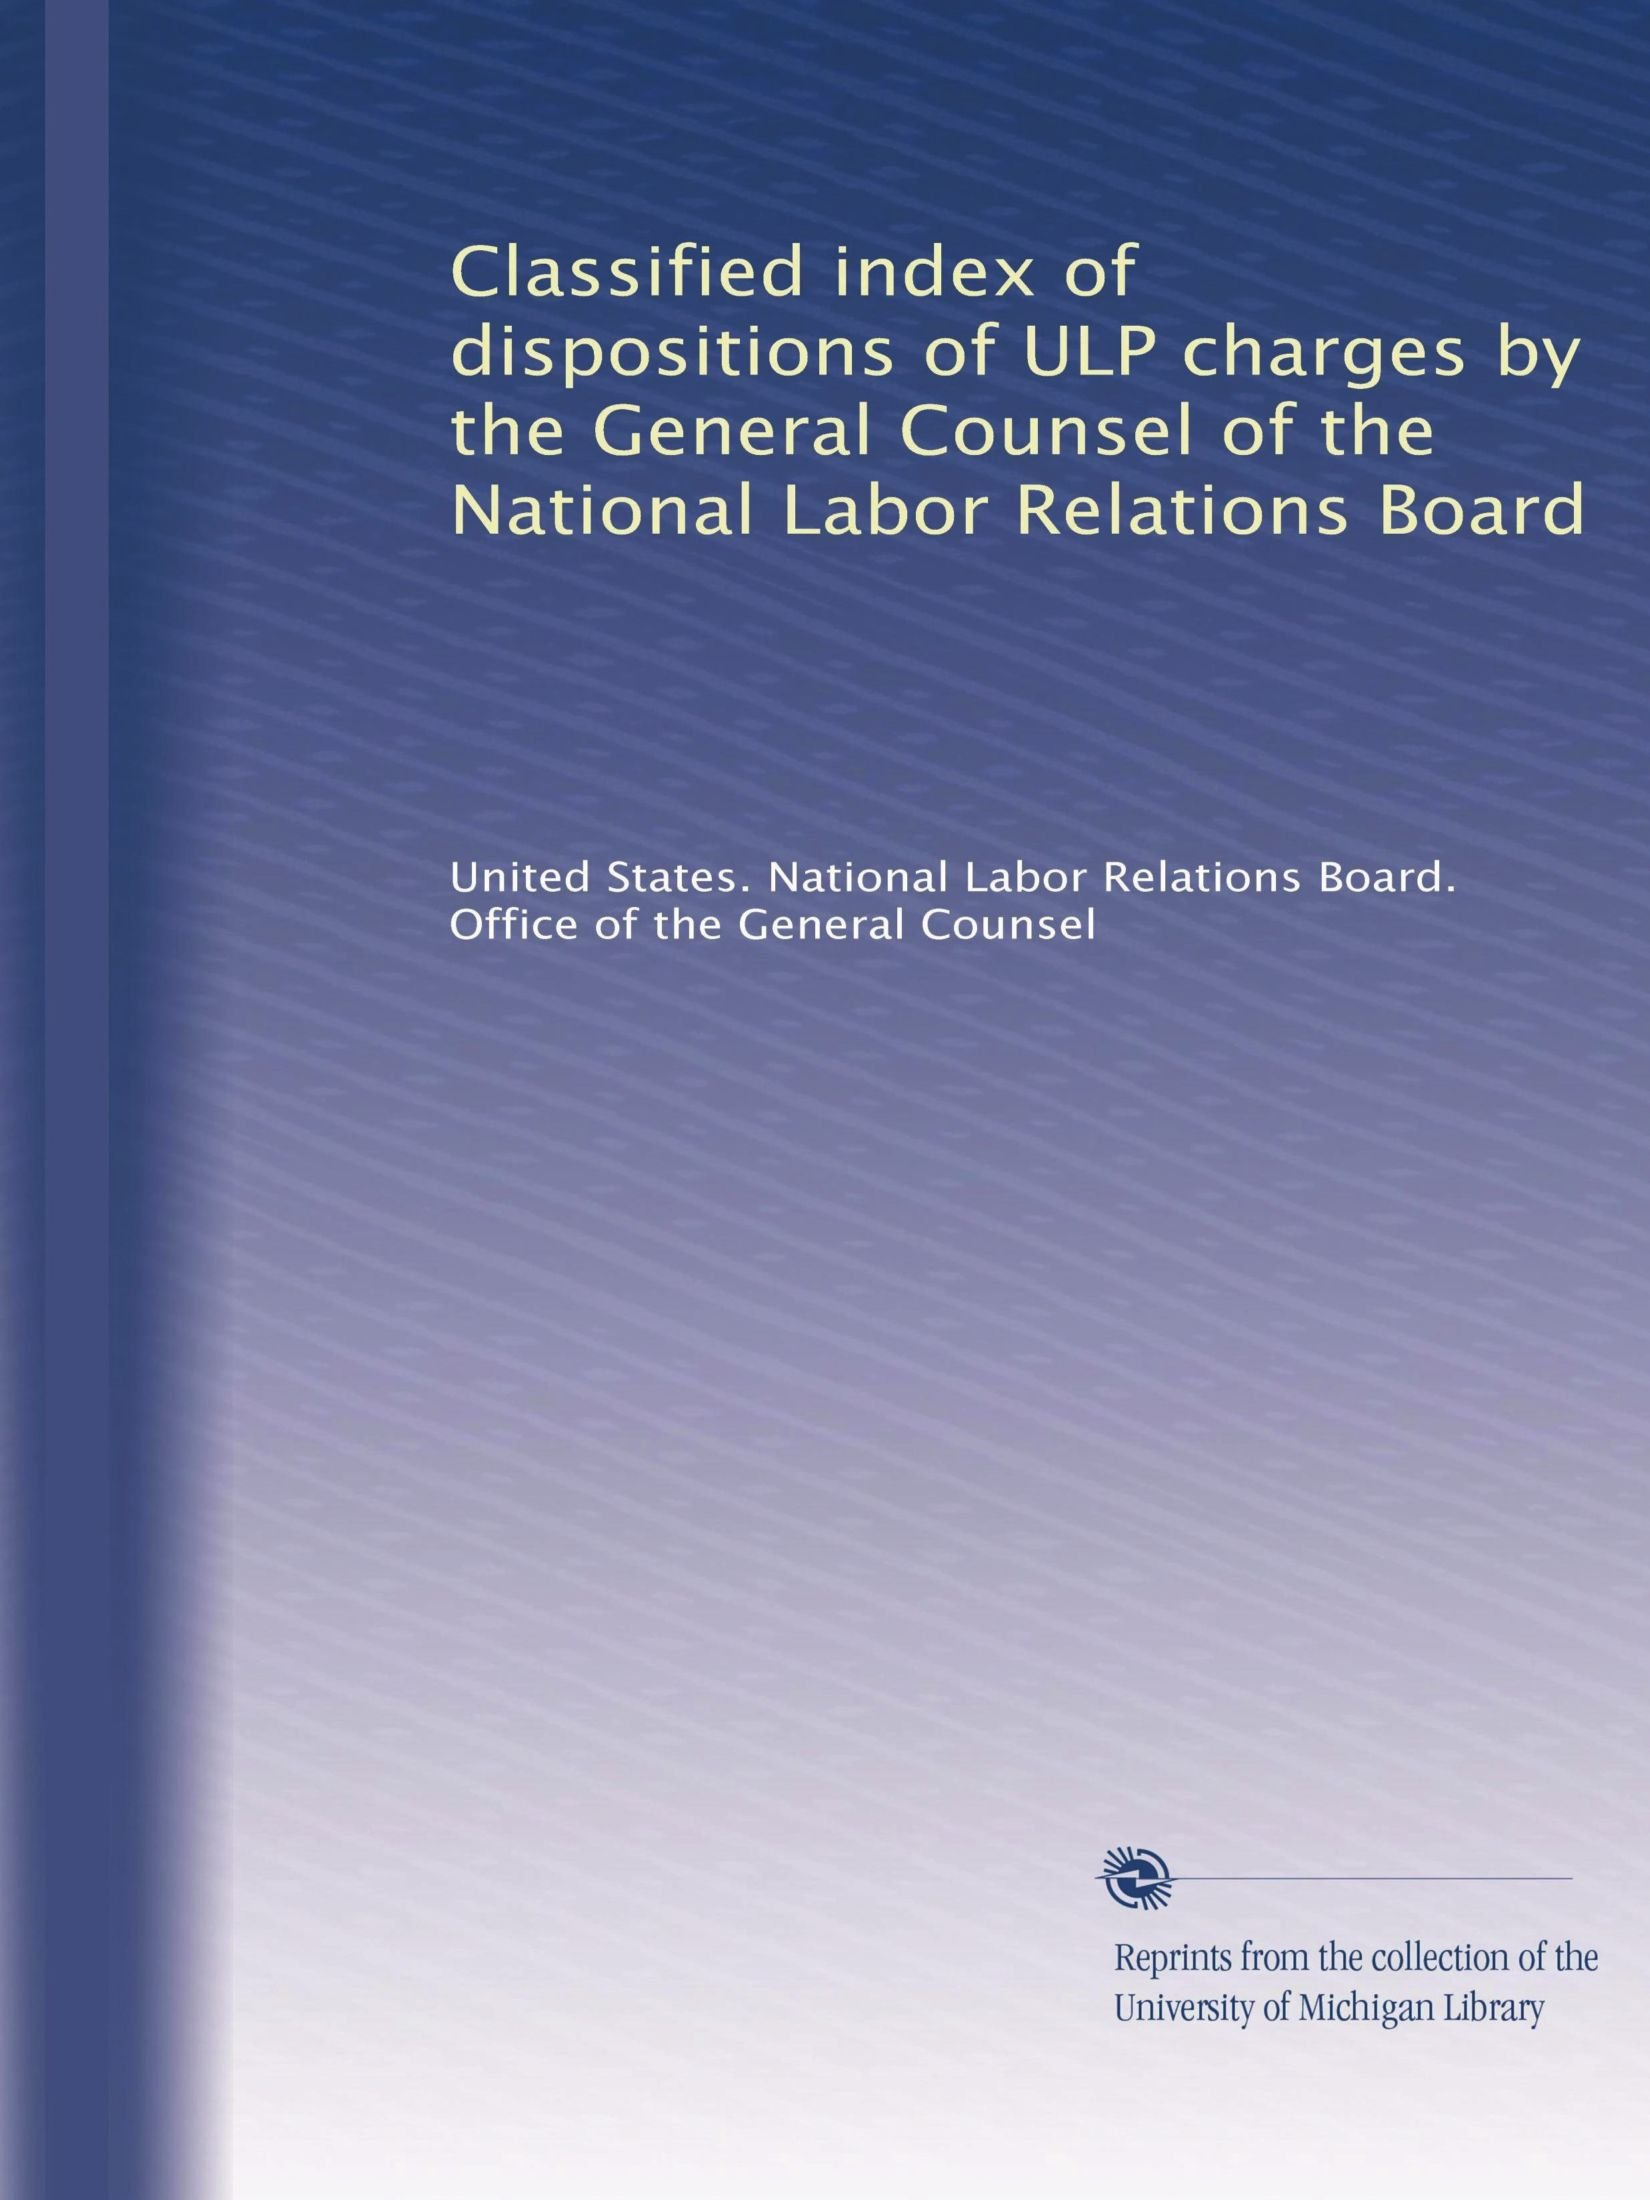 Download Classified index of dispositions of ULP charges by the General Counsel of the National Labor Relations Board (Volume 8) PDF